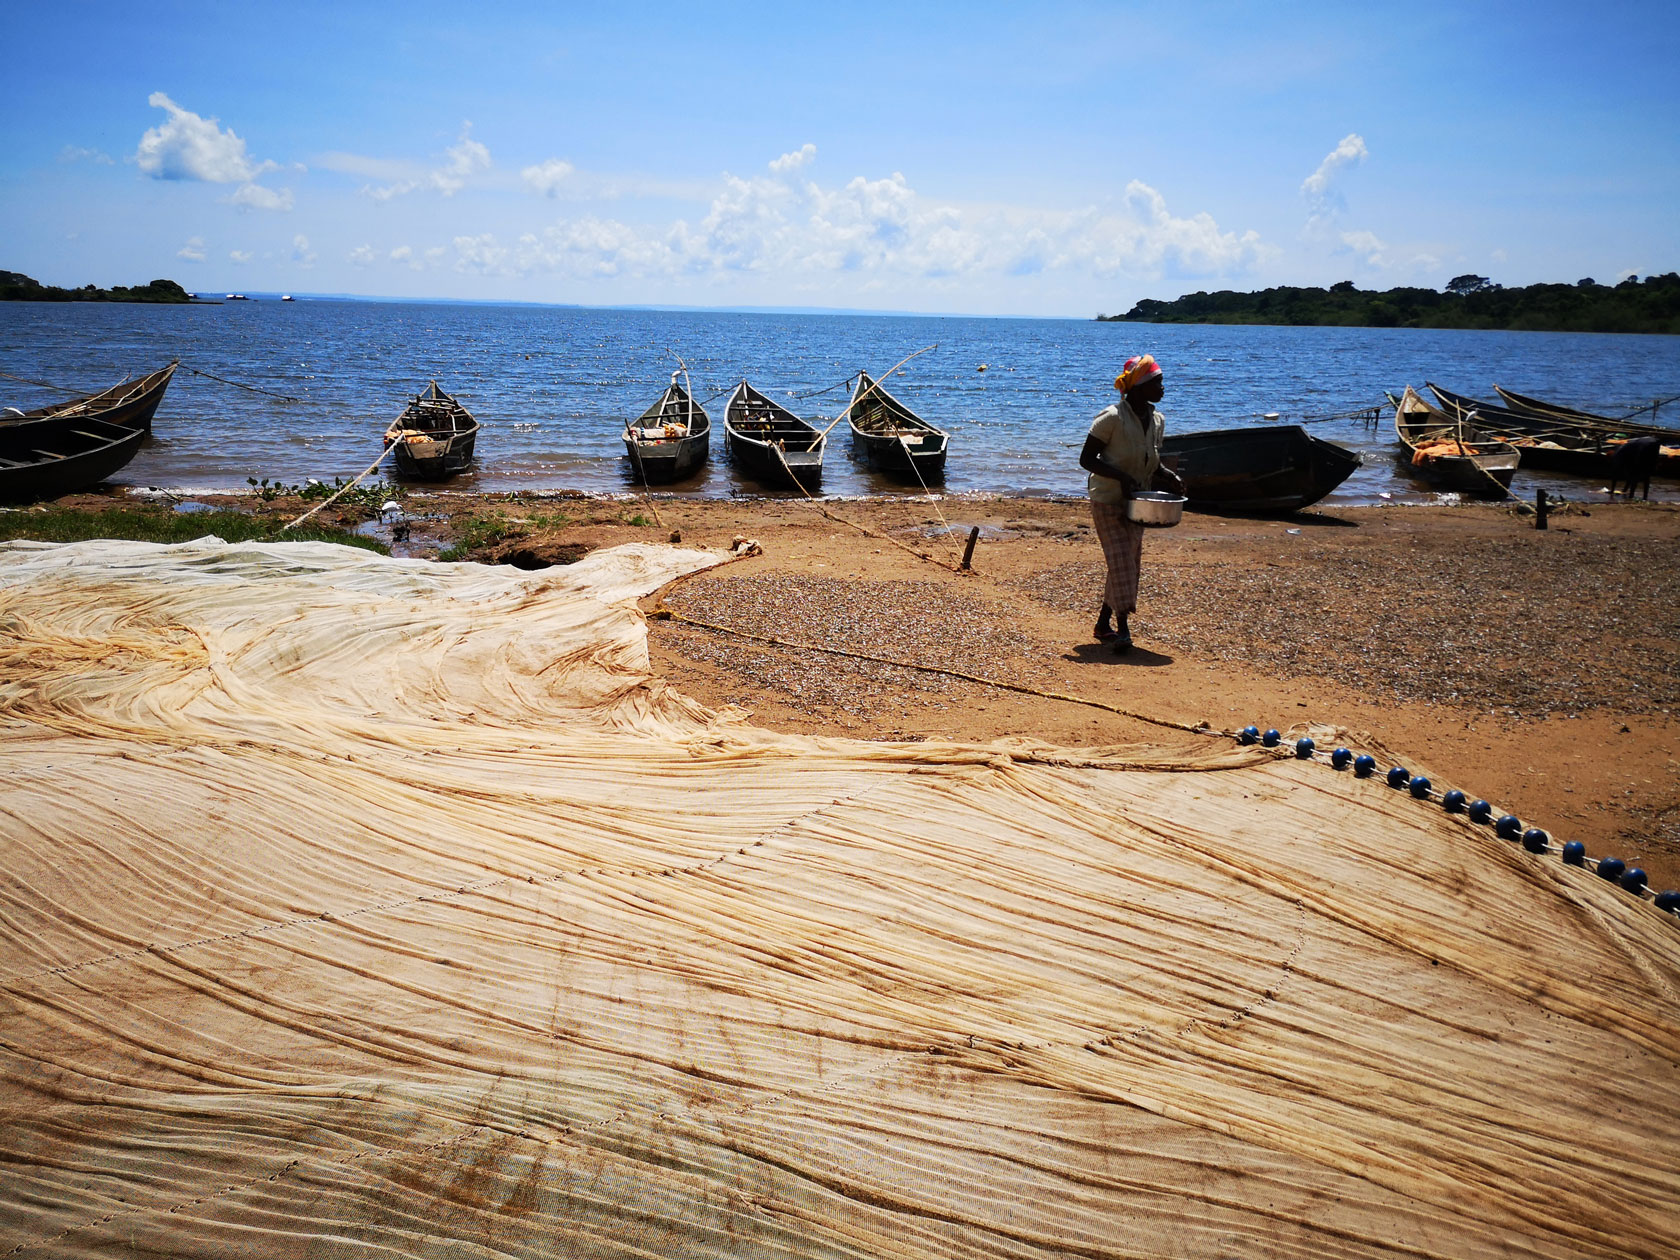 Fishing nets on the shore of Lake Victoria in Africa.